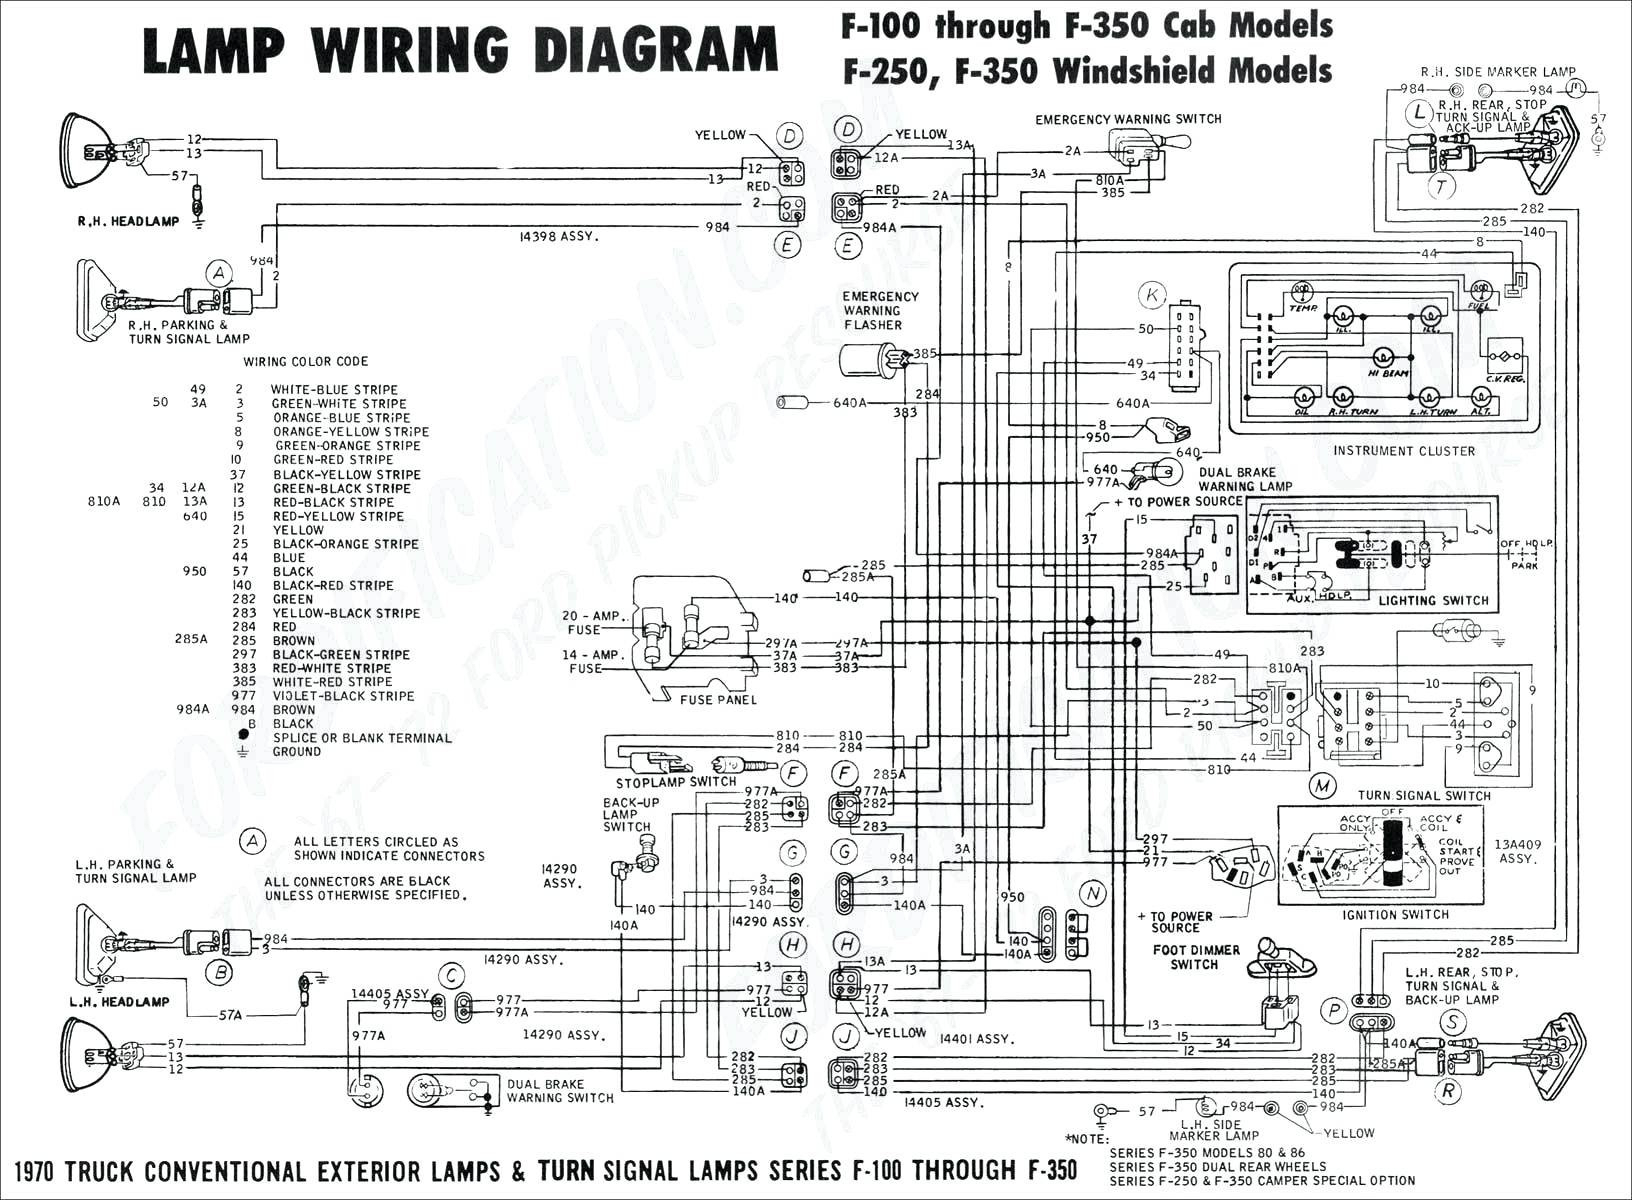 Get 2001 Ford F250 Trailer Wiring Diagram Sample - Ford F250 Trailer Plug Wiring Diagram